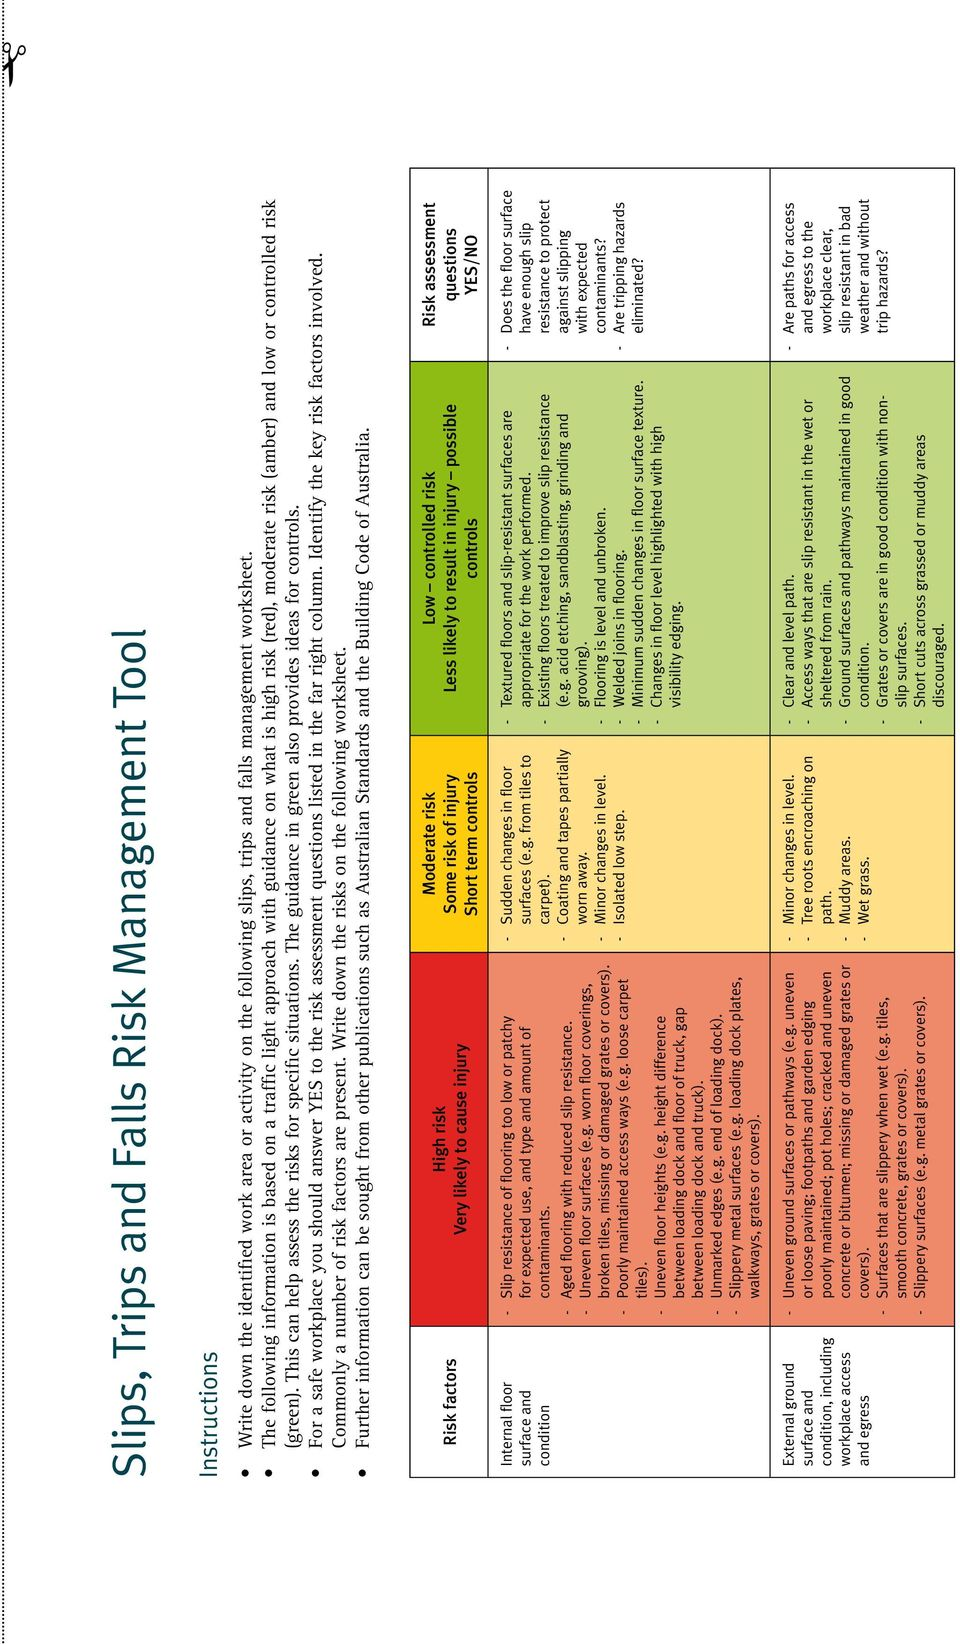 This can help assess the risks for specific situations. The guidance in green also provides ideas for controls.